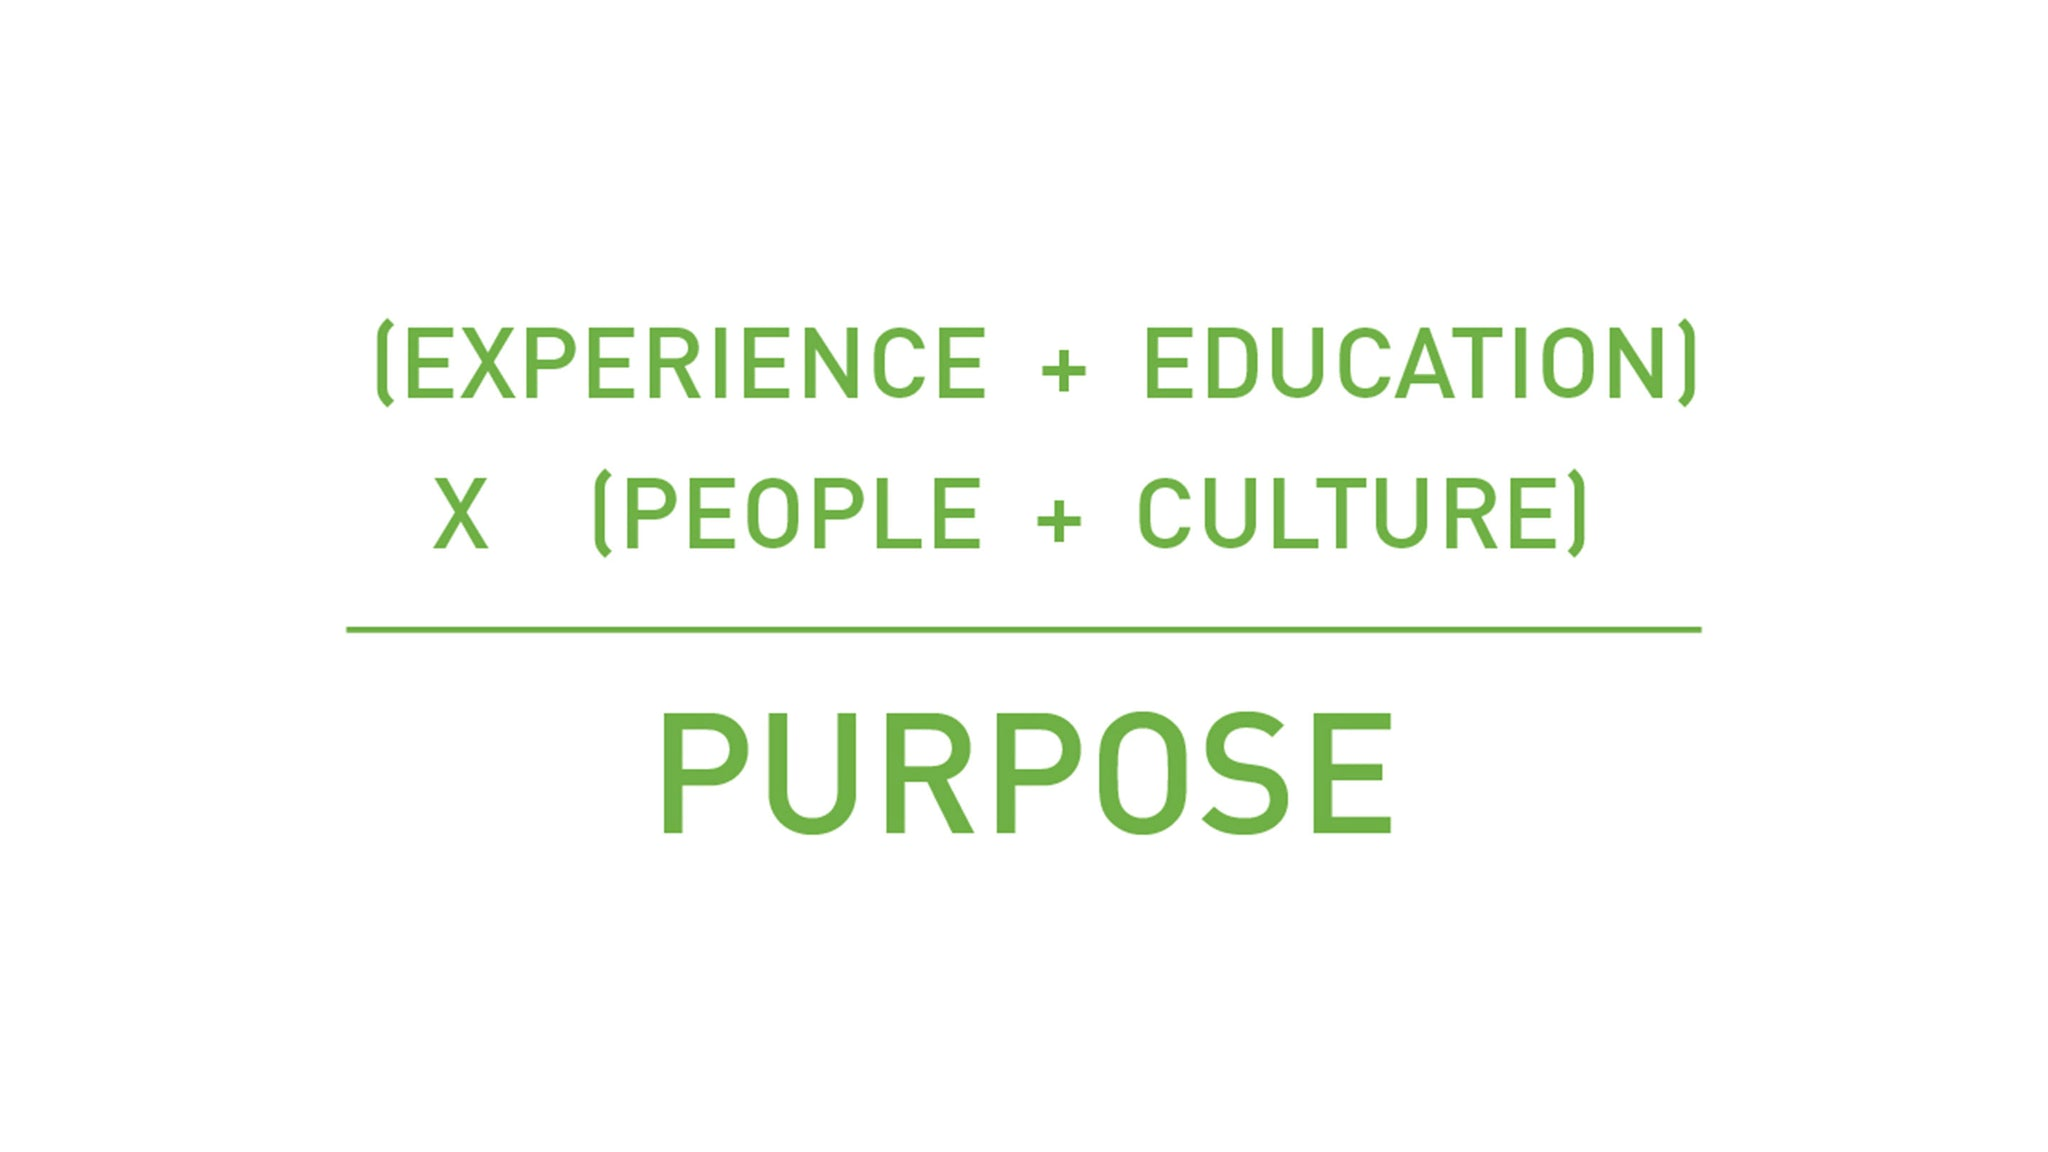 Purpose equation: Experience + Education X People + Culture = Purpose.